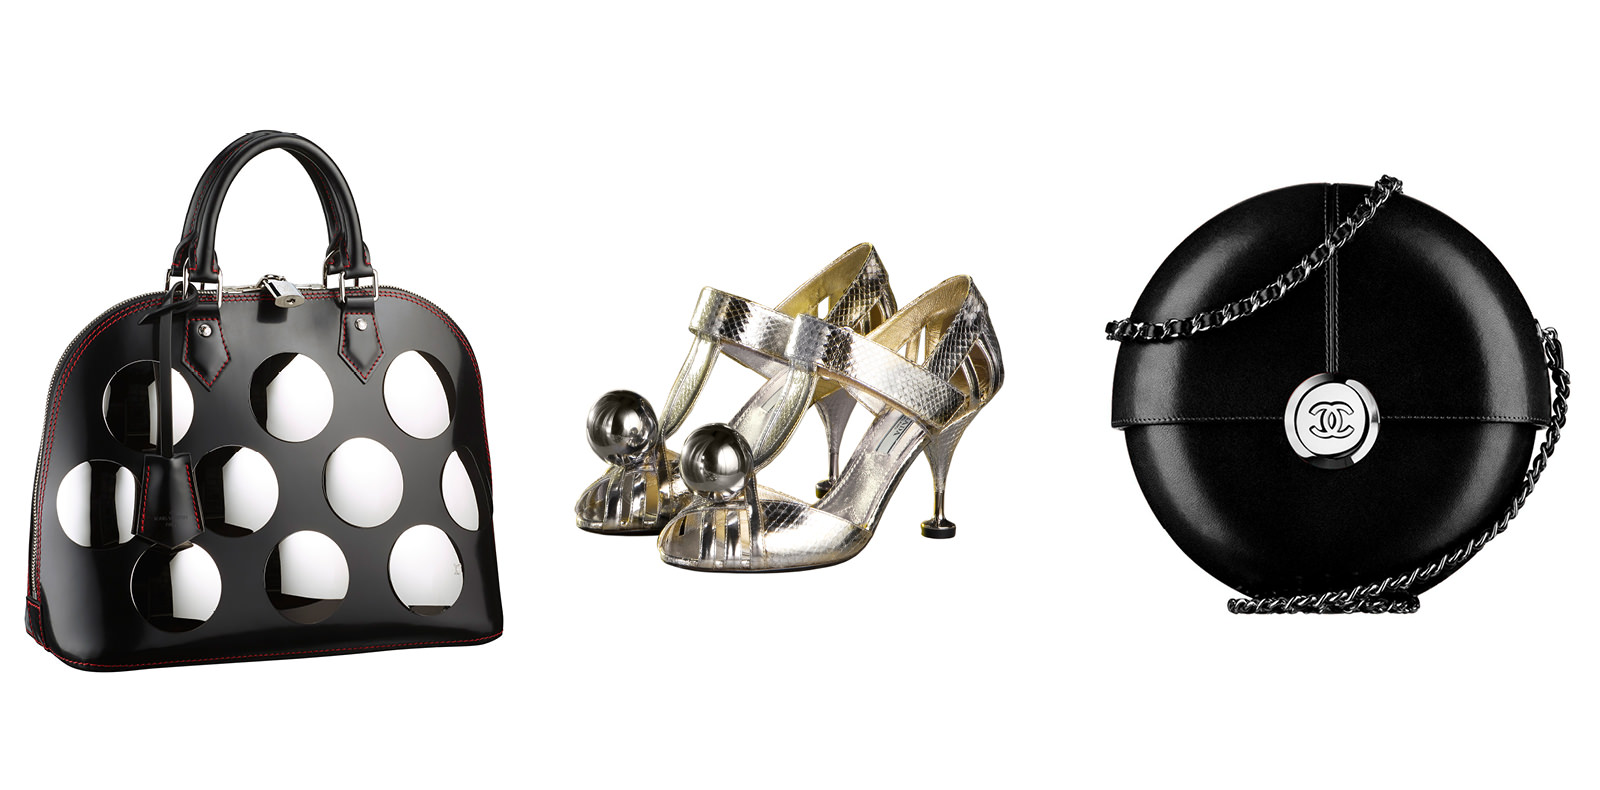 Alma leather and metal bag, LOUIS VUITTON. Leather bag, CHANEL. Leather sandals, PRADA.   Selection by Rebecca Bleynie